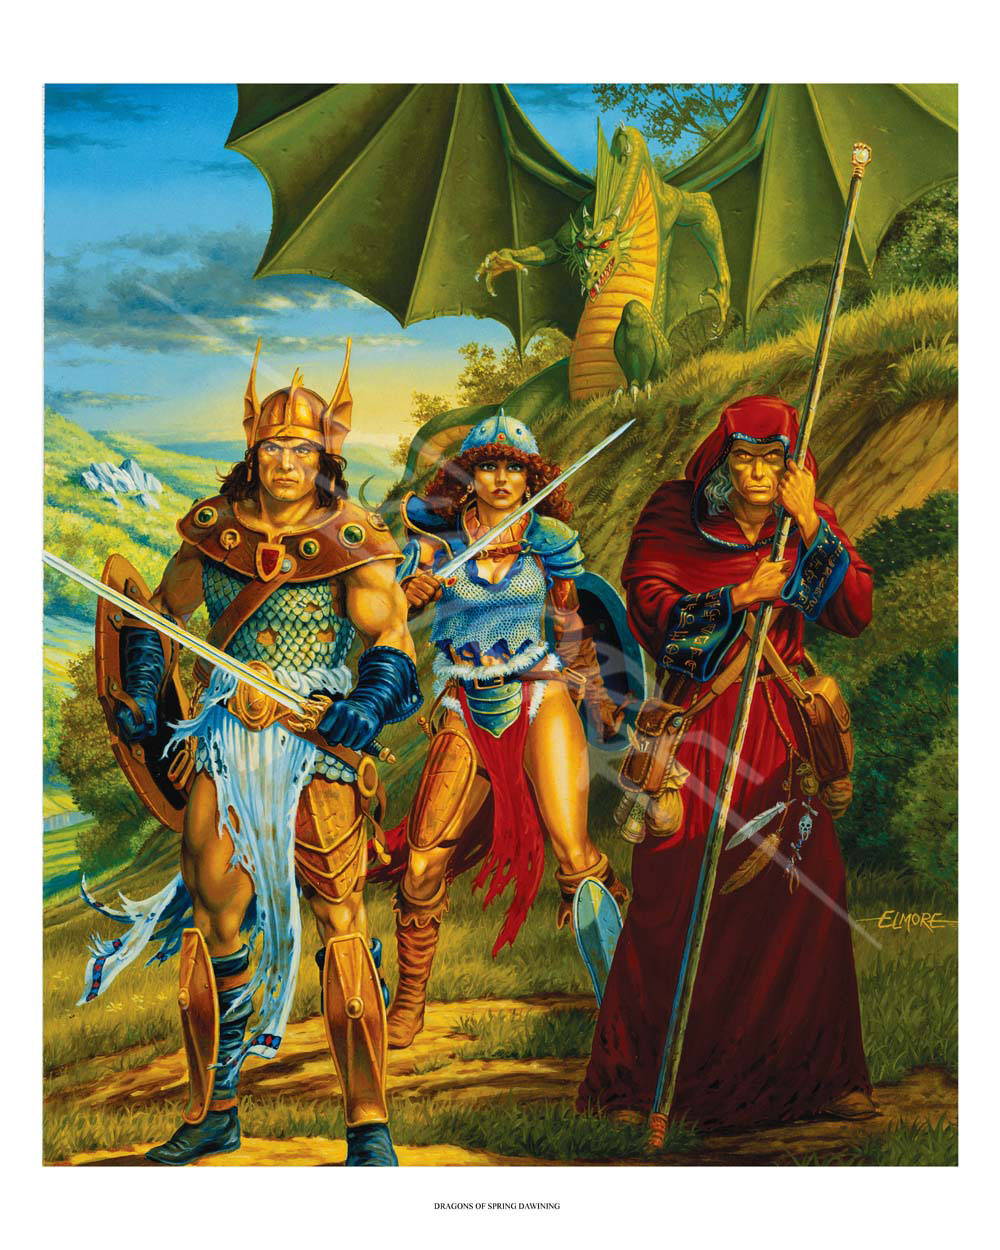 Dragonlance - Dragons Of Spring Dawning